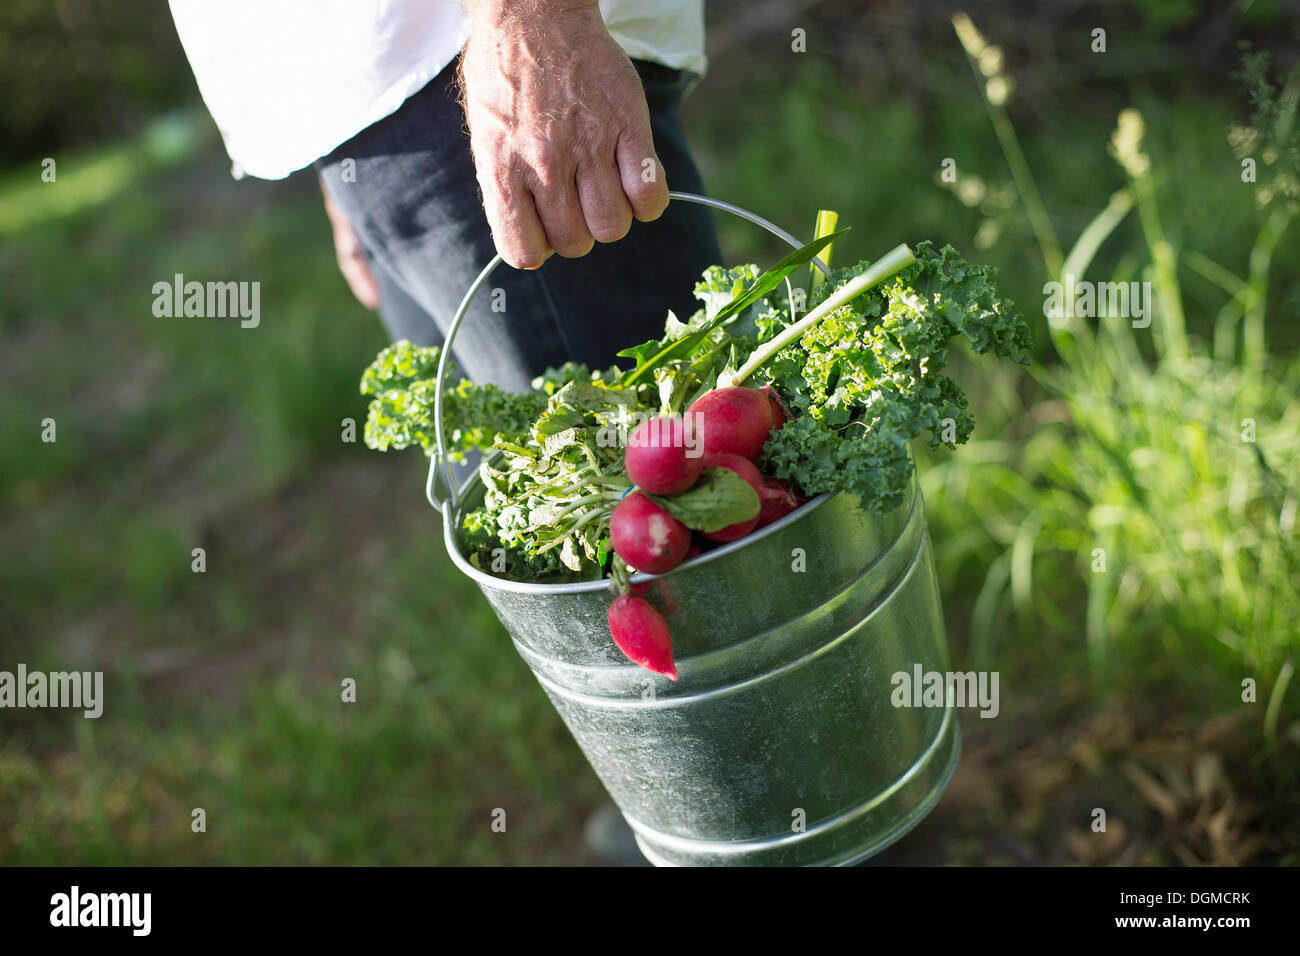 Organic farm. Summer party. A man carrying a metal pail of harvested salad leaves, herbs and vegetables. - Stock Image